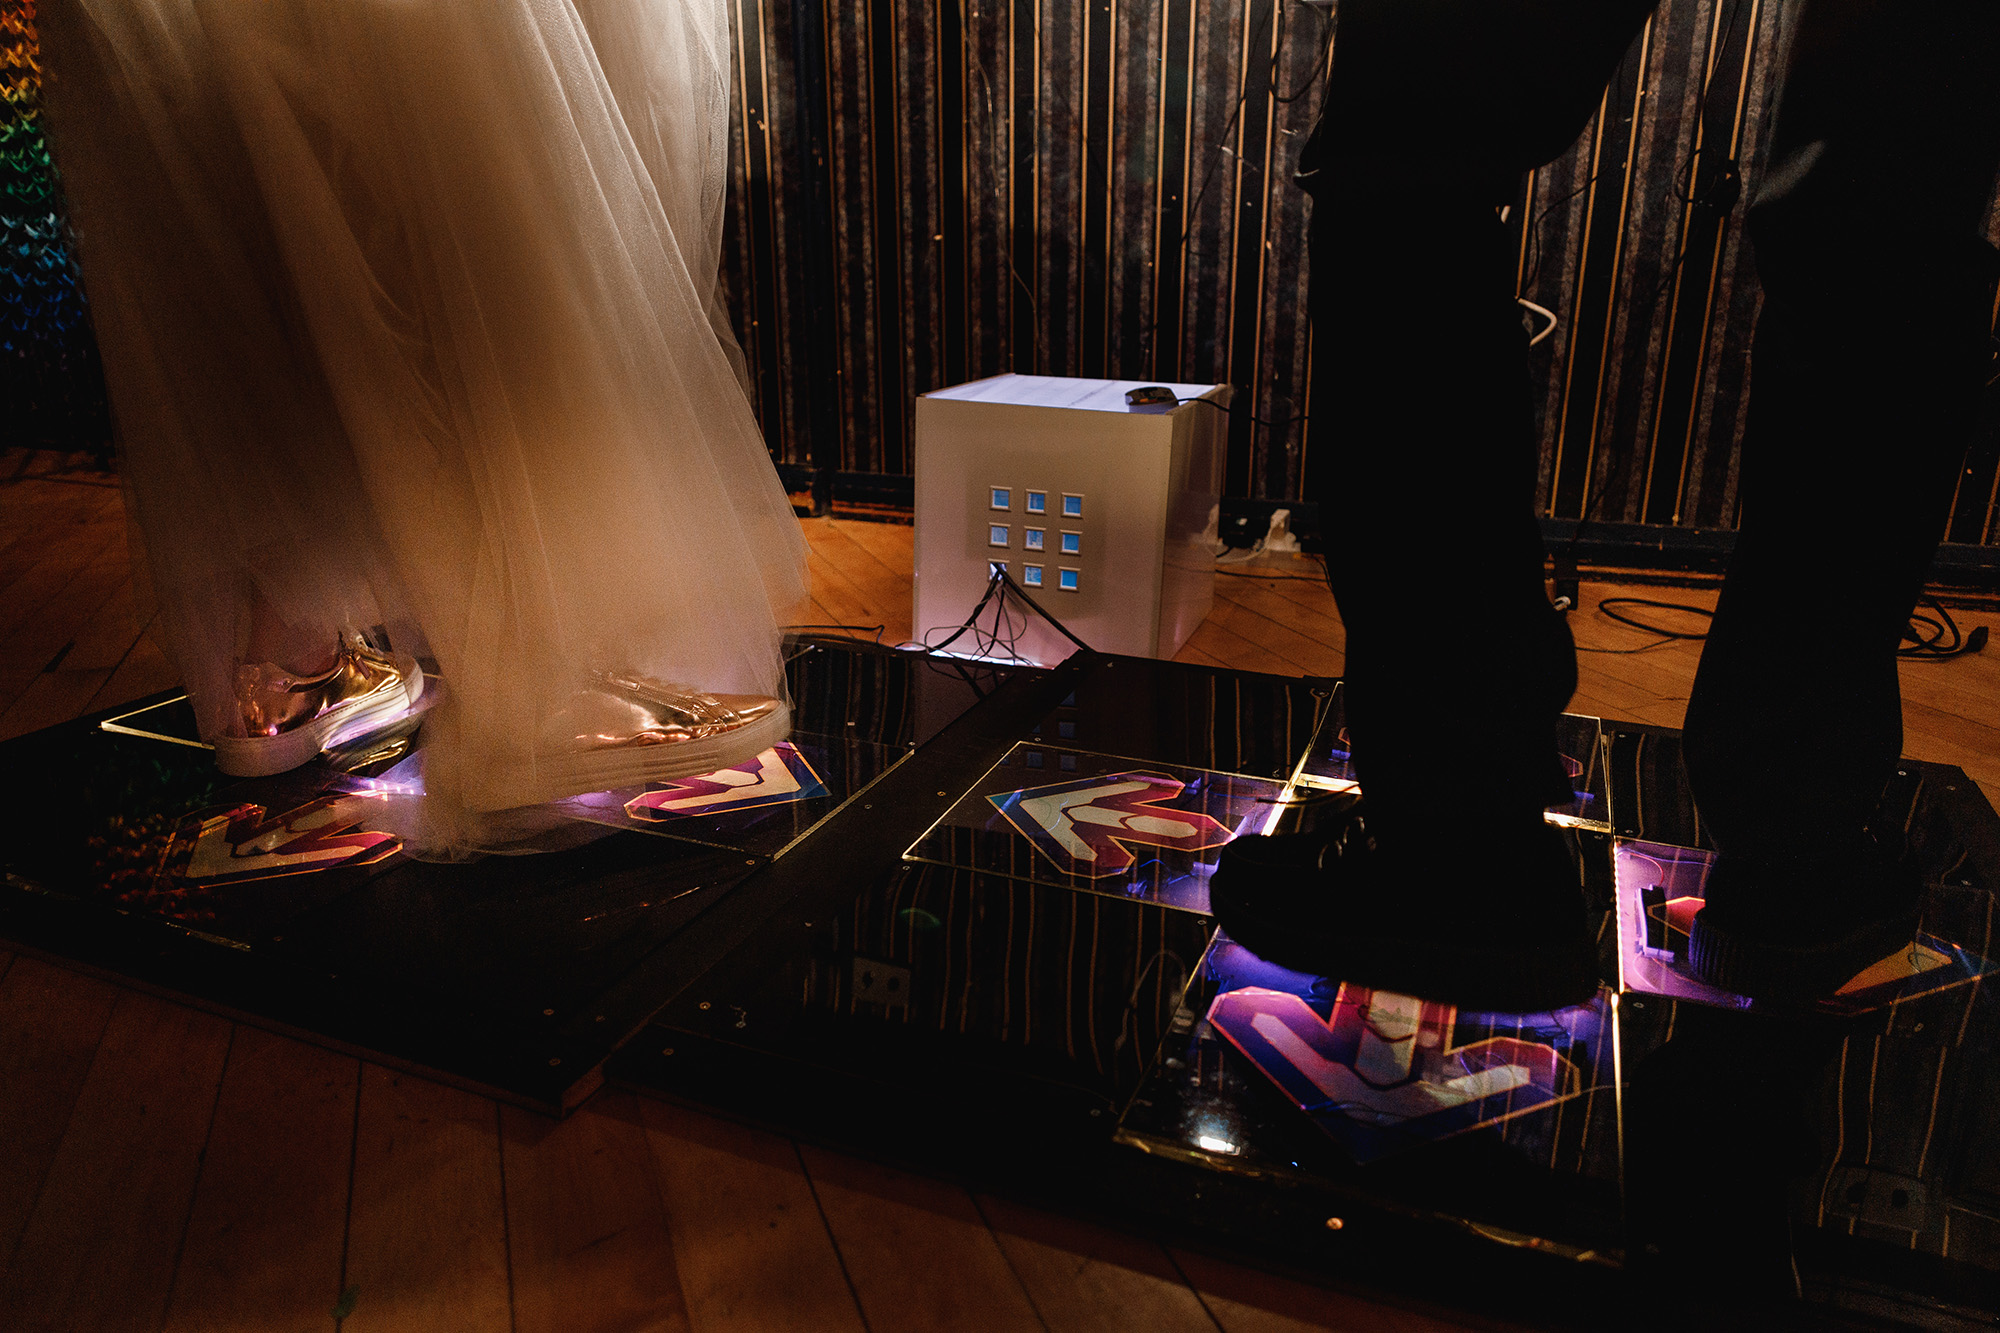 A low angle shot of a bride and groom's feet on a dance mat